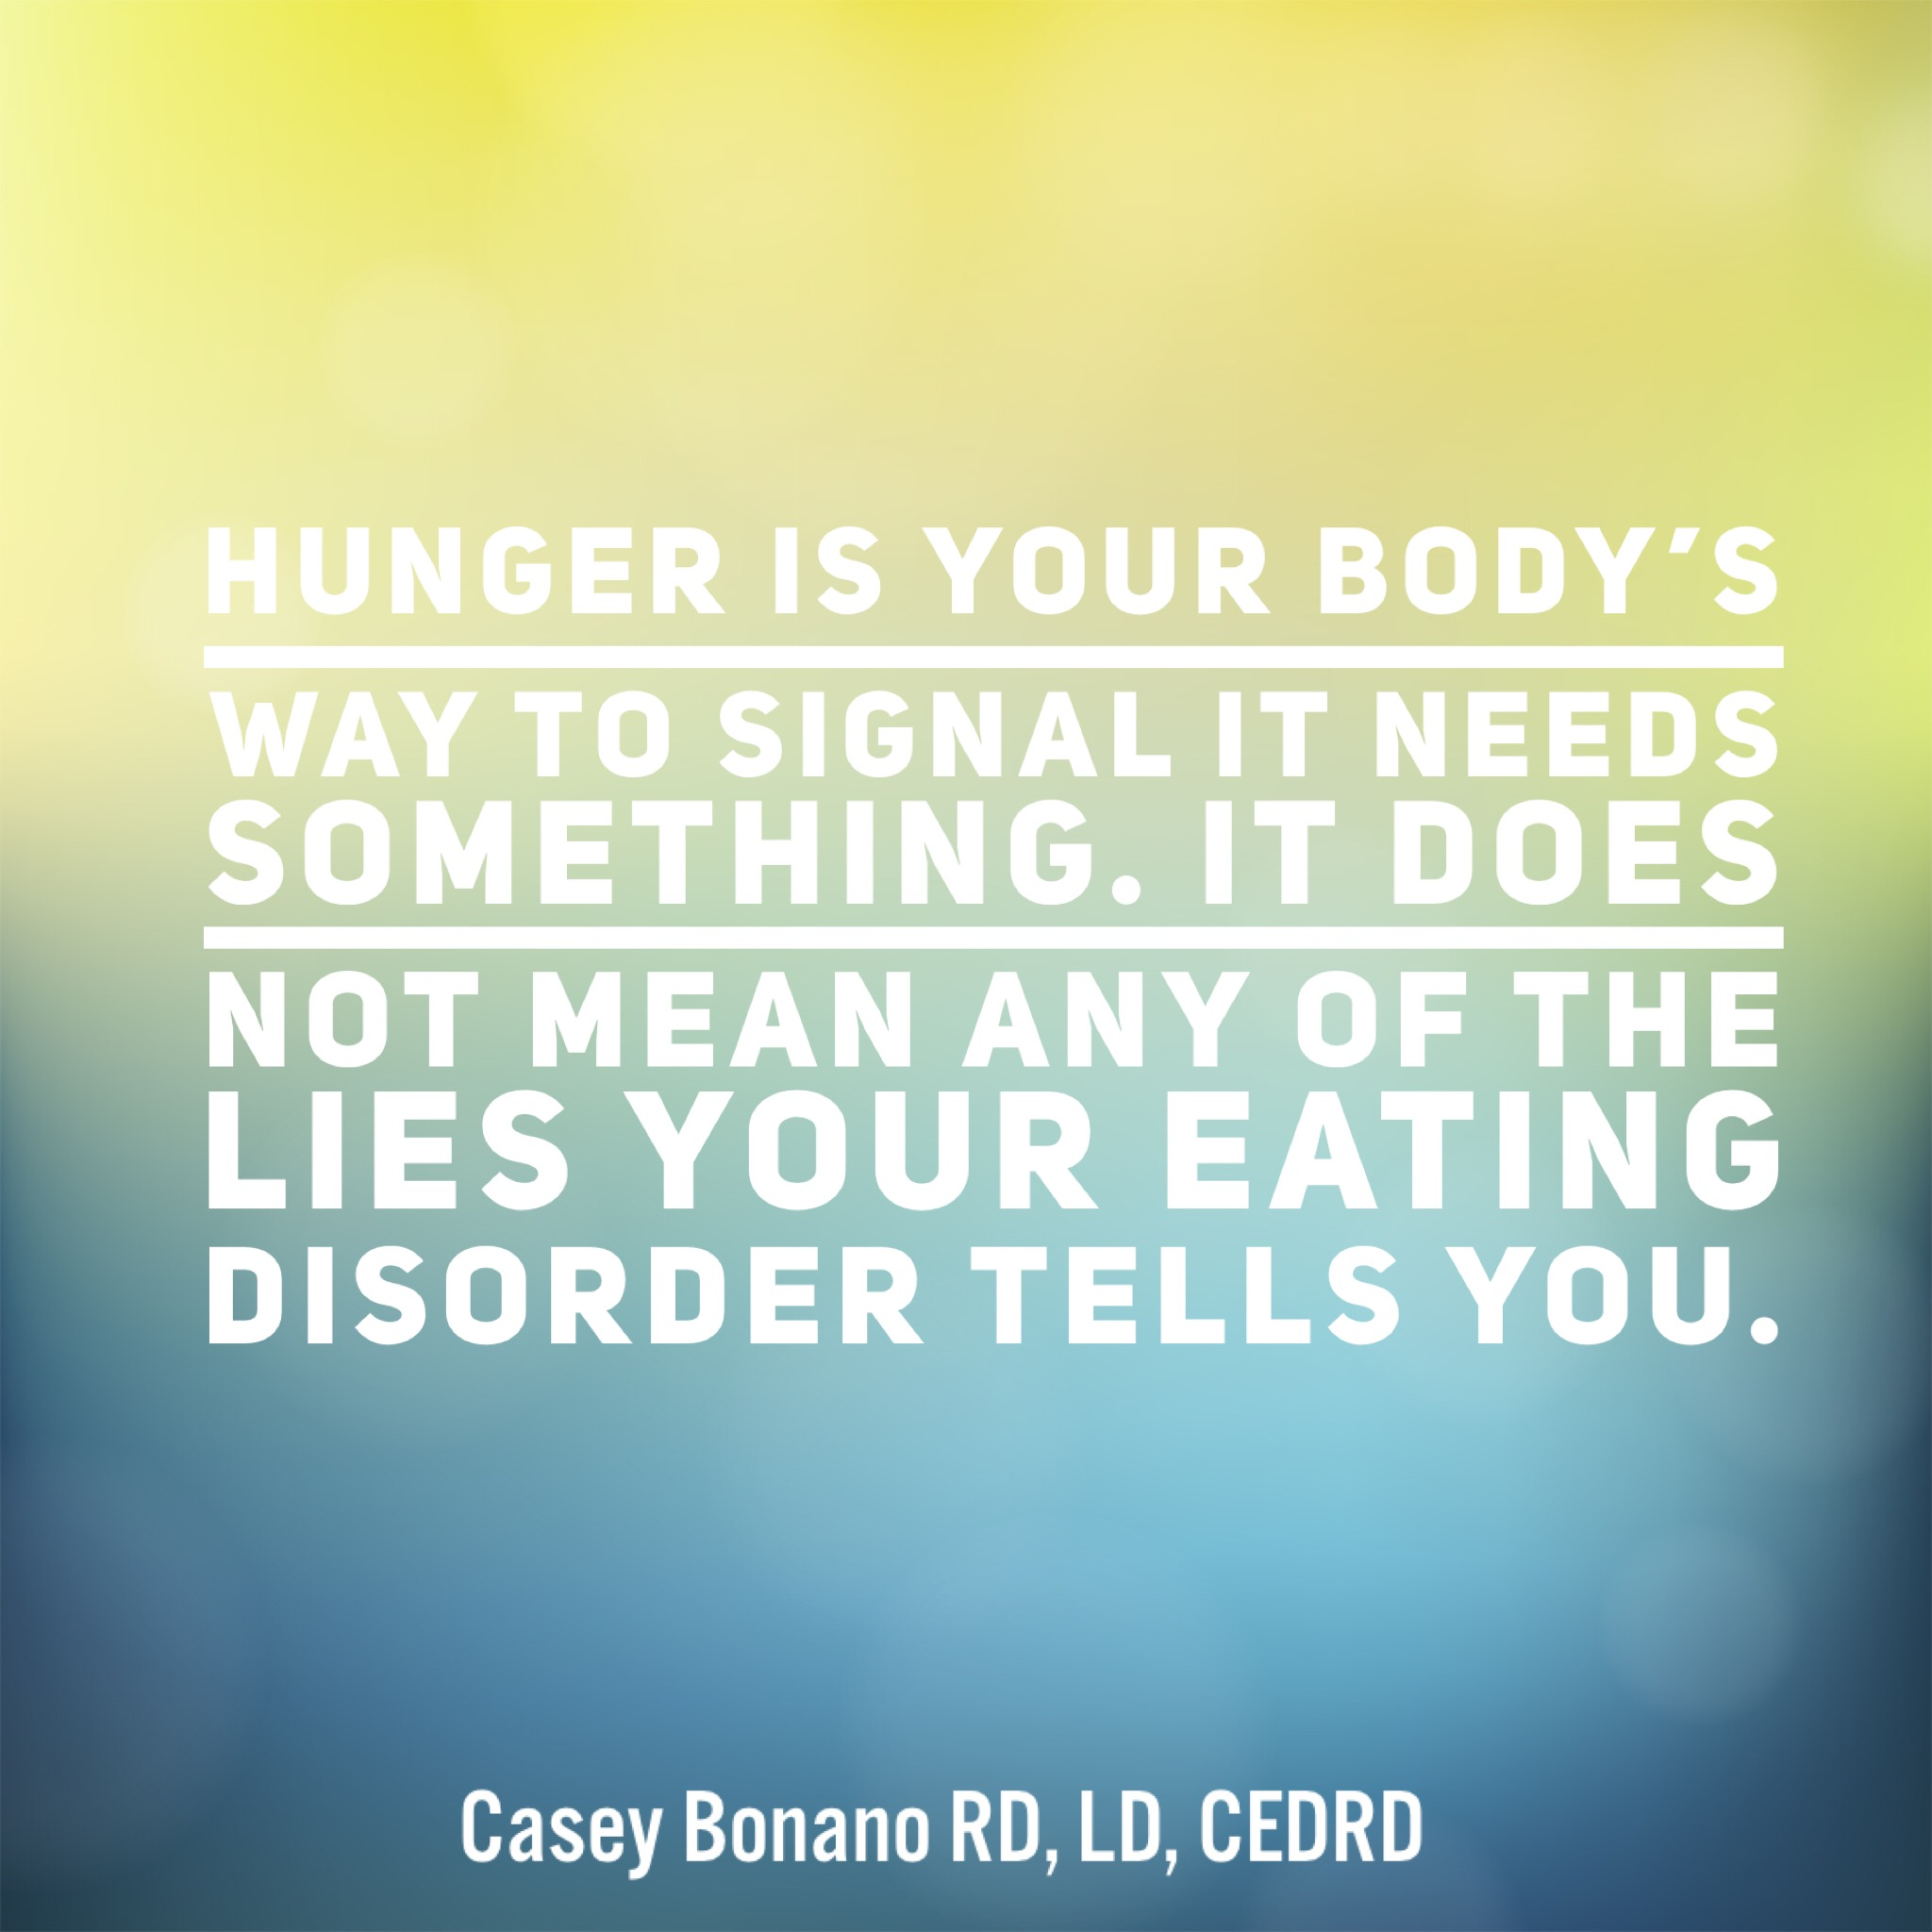 Identifying Eating Disorder Characteristics for Early Intervention, Dallas Nutritional Counseling, Casey Bonano RD, LD, CEDRD #dallasnutritionalcounseling #balancedeating #caseybonanord #dallasrd #dietitian #nutritionist #nondiet #intuitiveeating #foodforthought *Image is not my own*